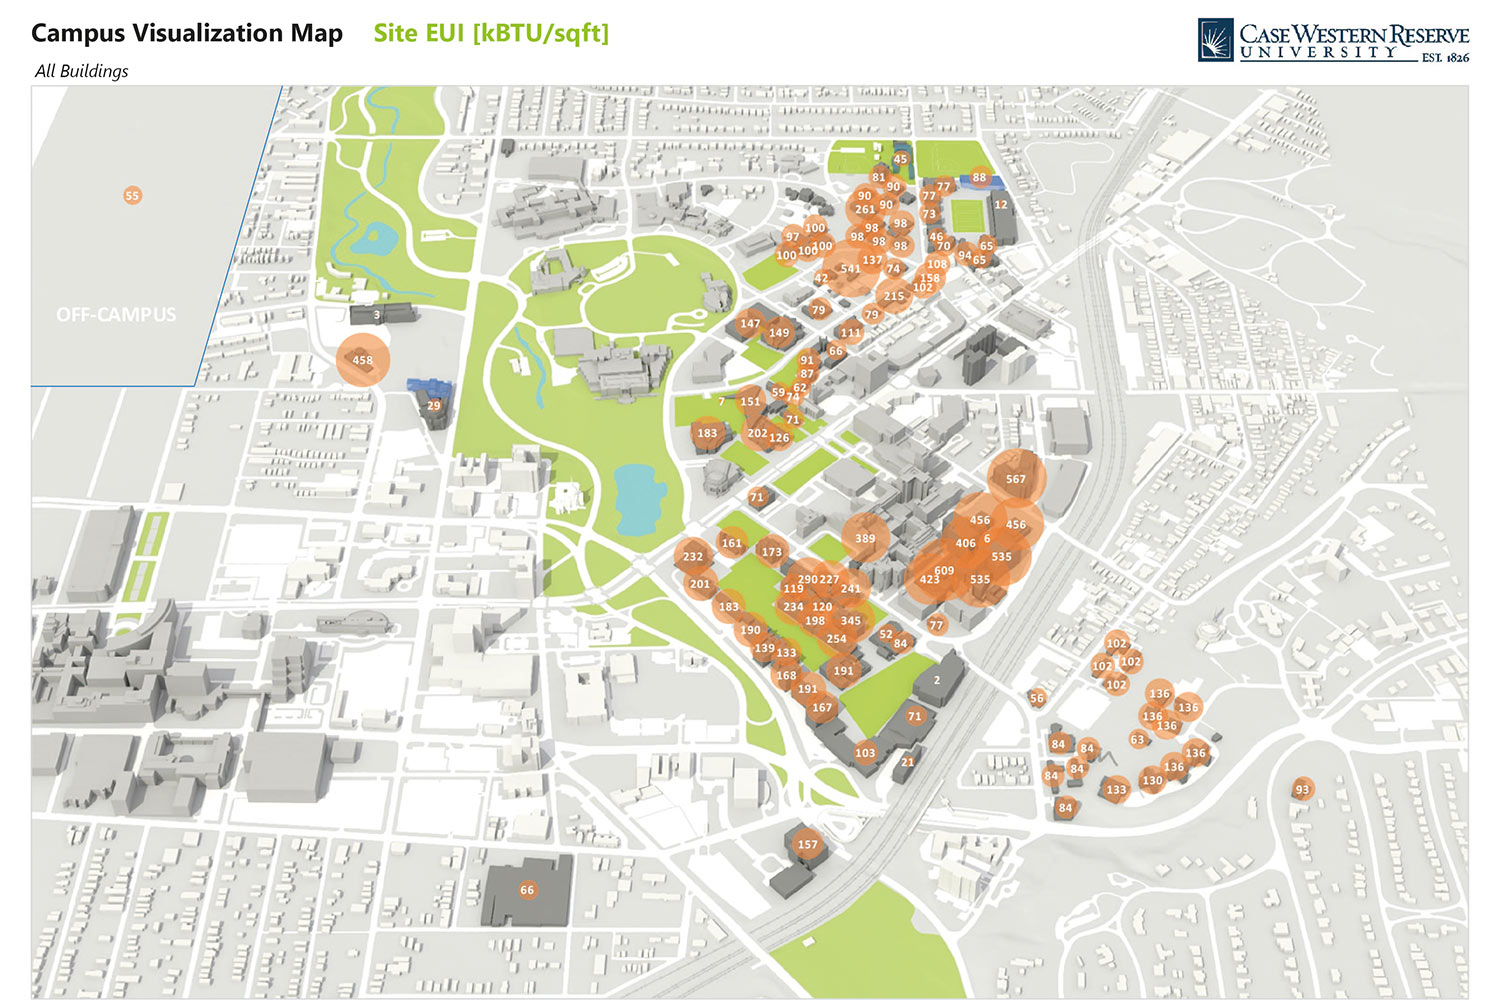 case western reserve university campus map Case Western Reserve University Energy Improvement Plan Buro Happold case western reserve university campus map